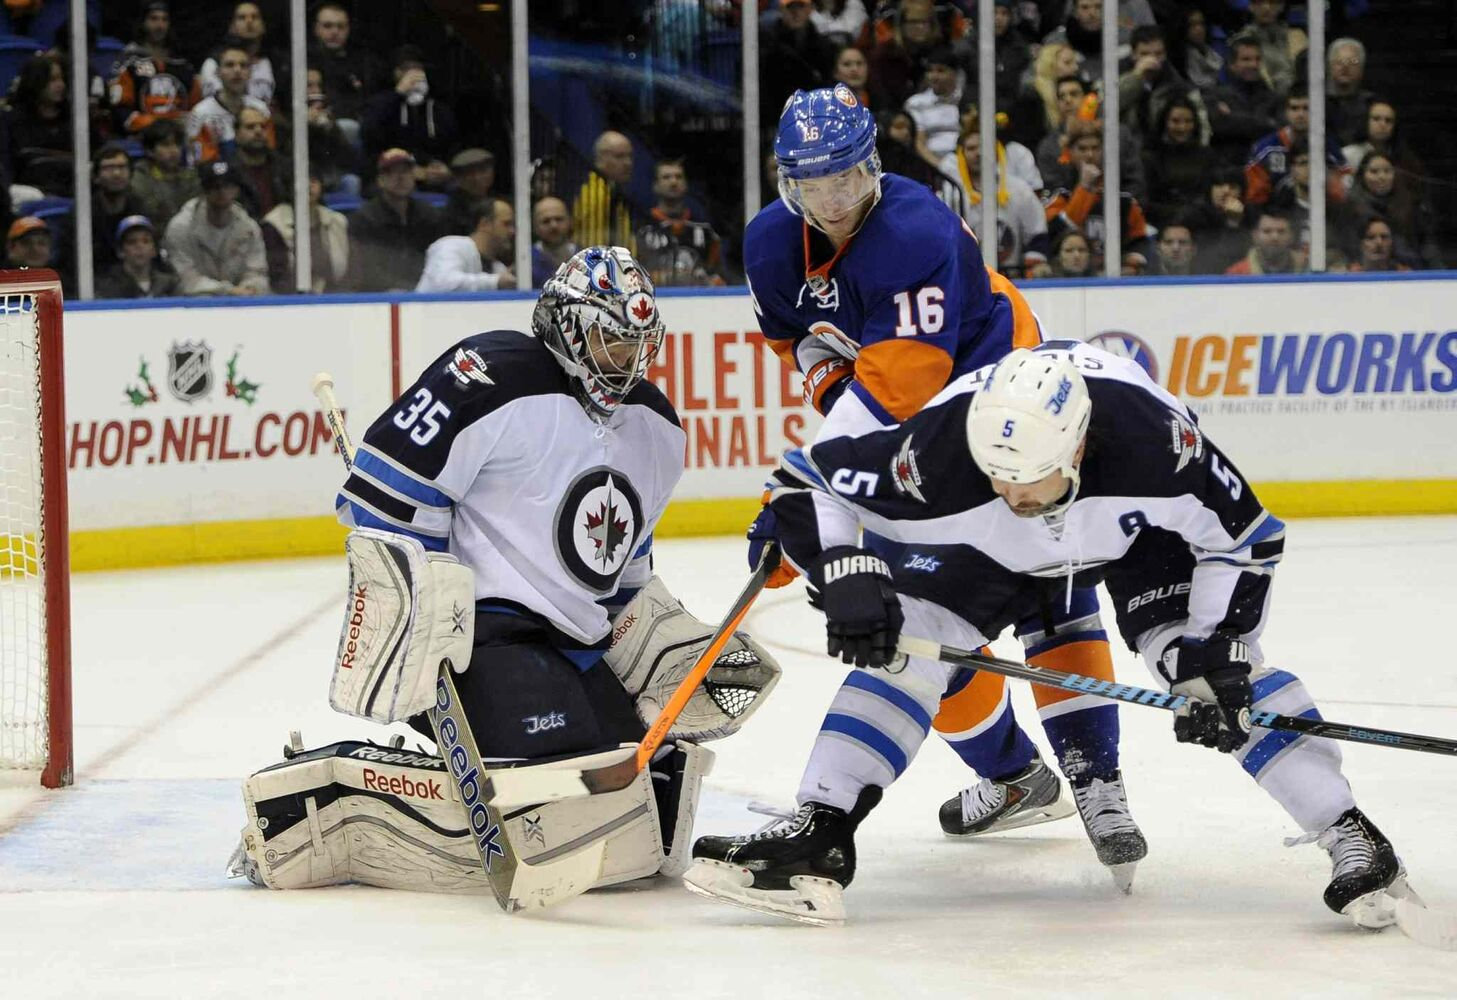 New York Islanders' Peter Regin (centre) and Winnipeg Jets defenceman Mark Stuart (right) scuffle in front of the net as Jets goalie Al Montoya defends during the second period. (Kath Kmonicek / The Associated Press)